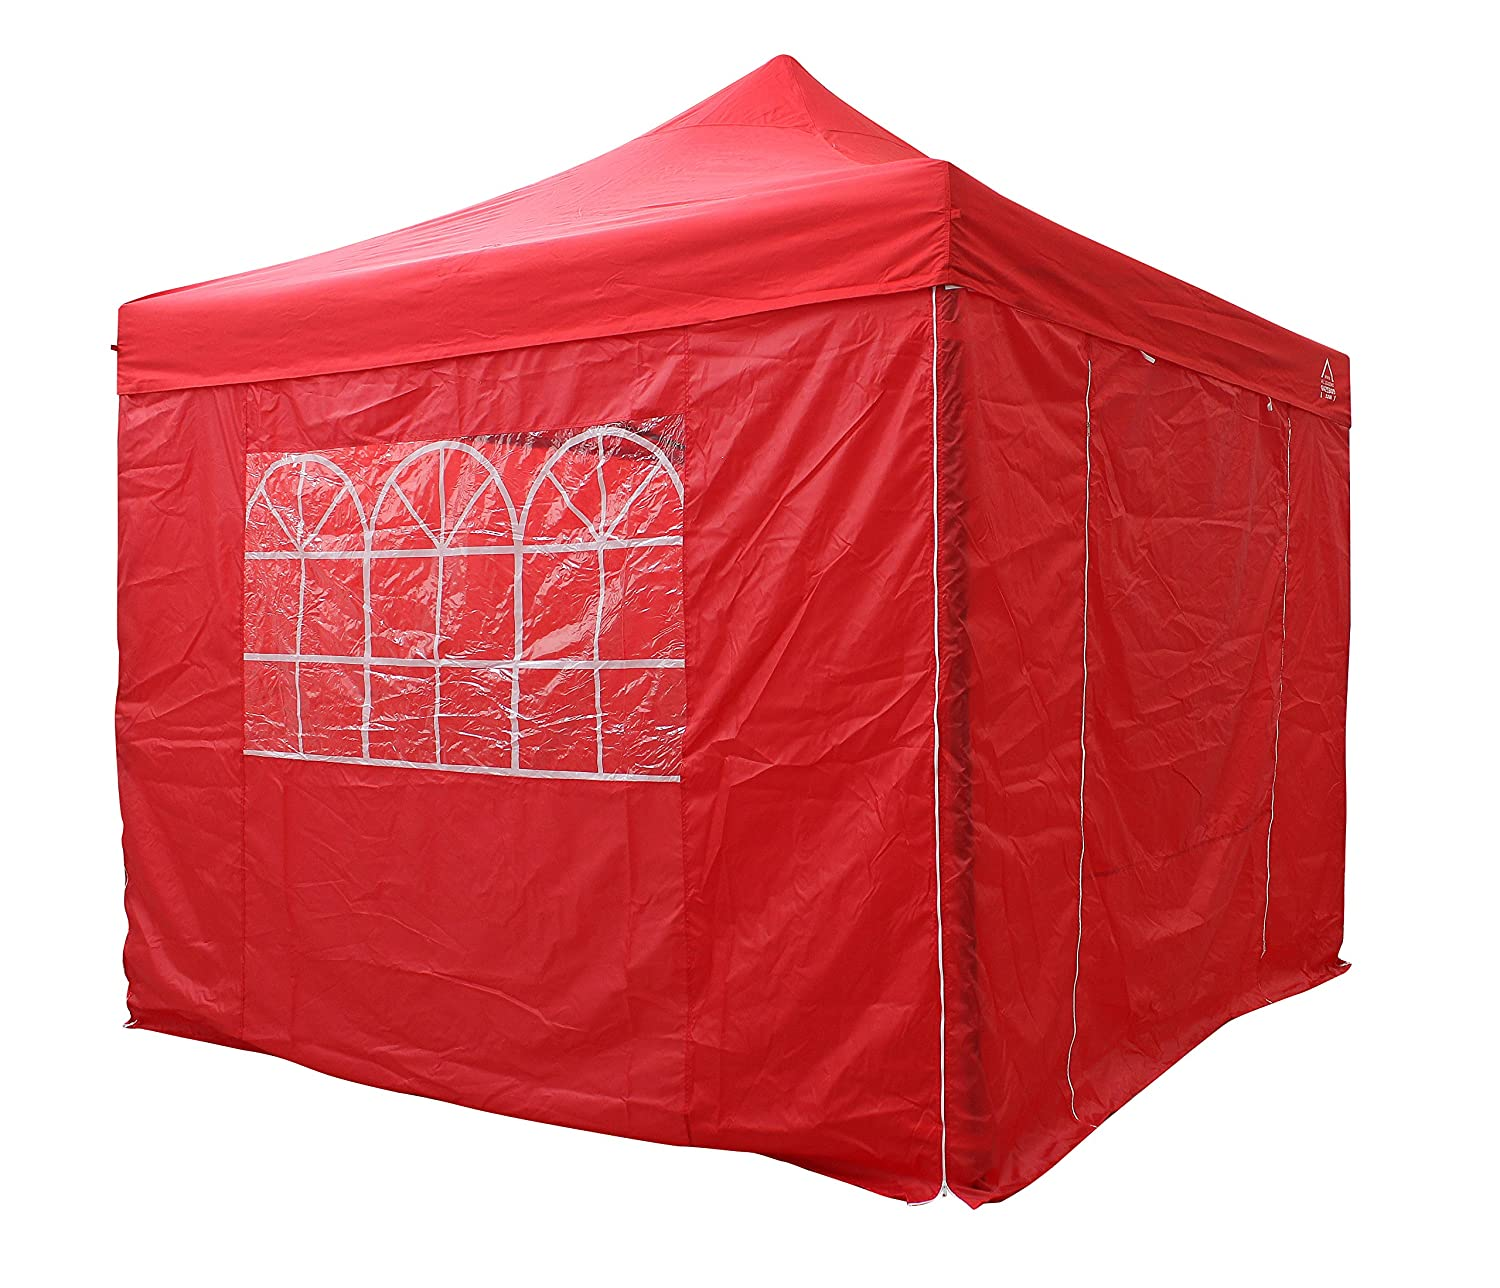 AllSeasonsGazebos Choice of 7 Colours, 3x3m, Heavy Duty, Fully Waterproof, Premium Pop Up Gazebo with 4 x Standard 100% waterproof zip up Side Panels. With Carry Bag and 4 x leg weight bags (Beige) All Seasons Gazebos